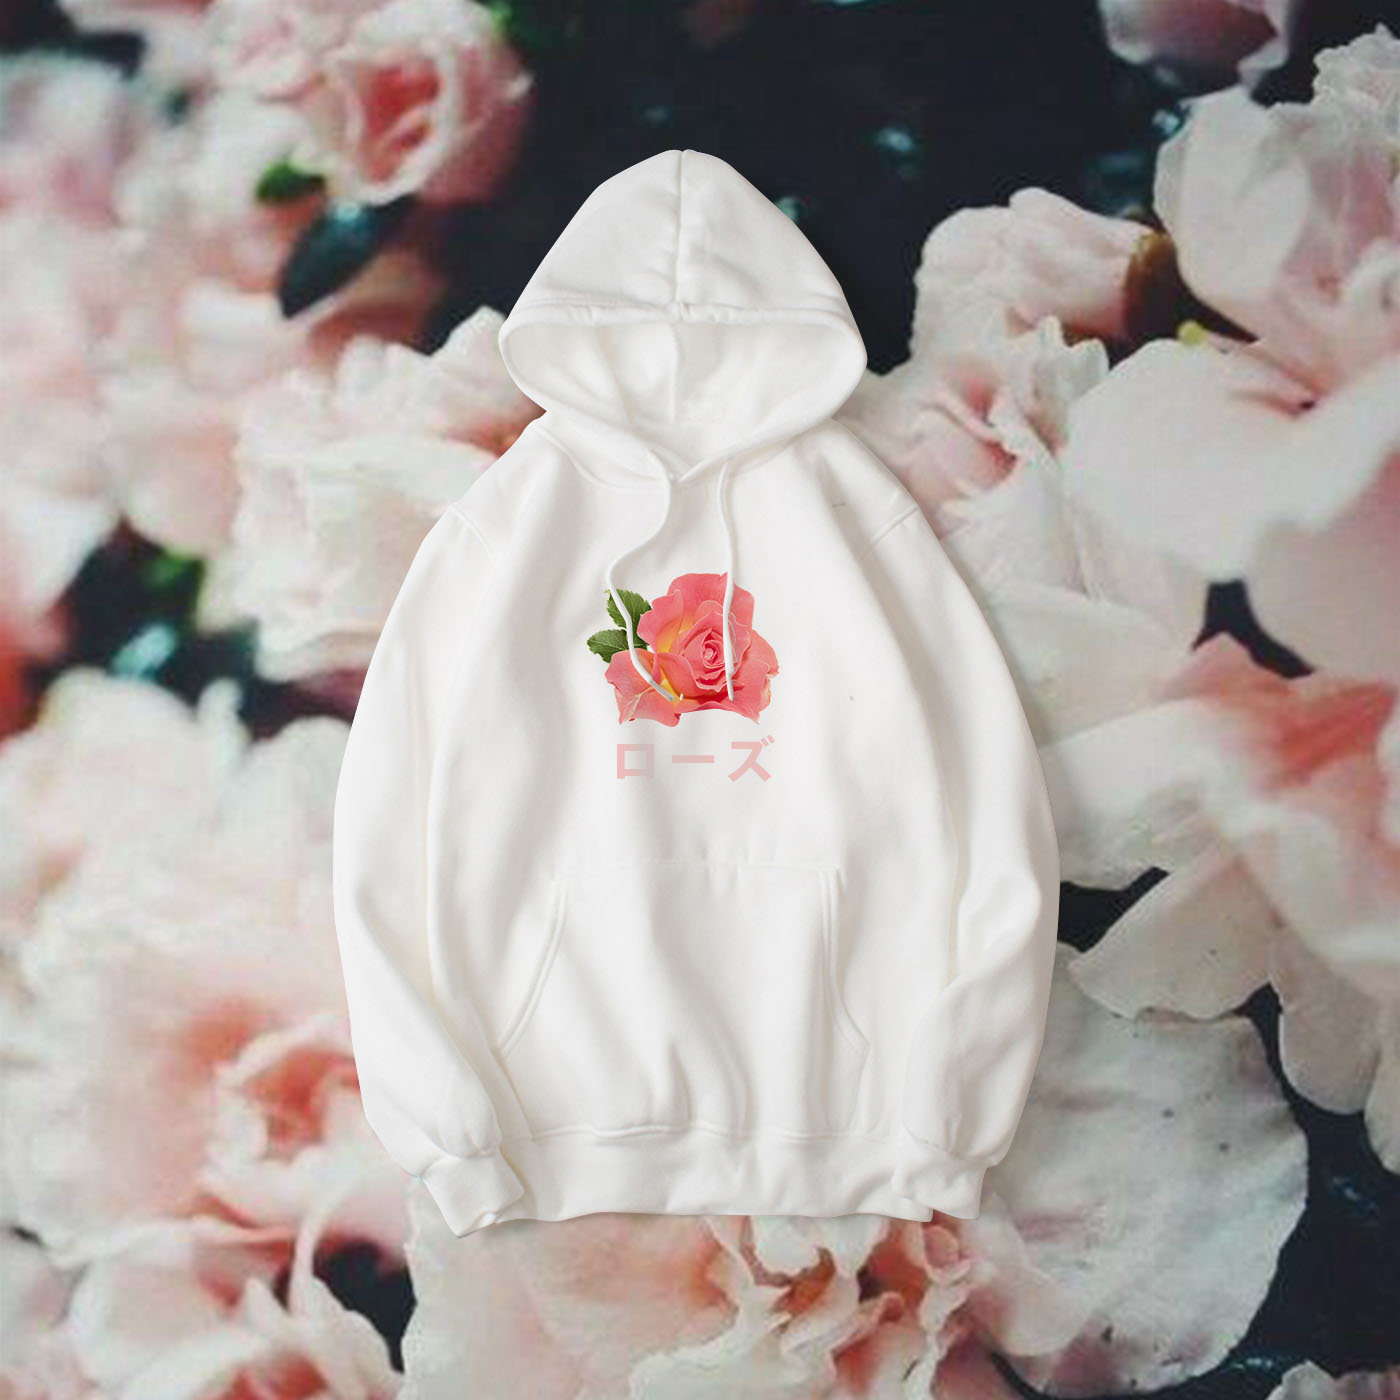 Japanese Pastel Pink Rose Hoodie In White Soldrelax Online Store